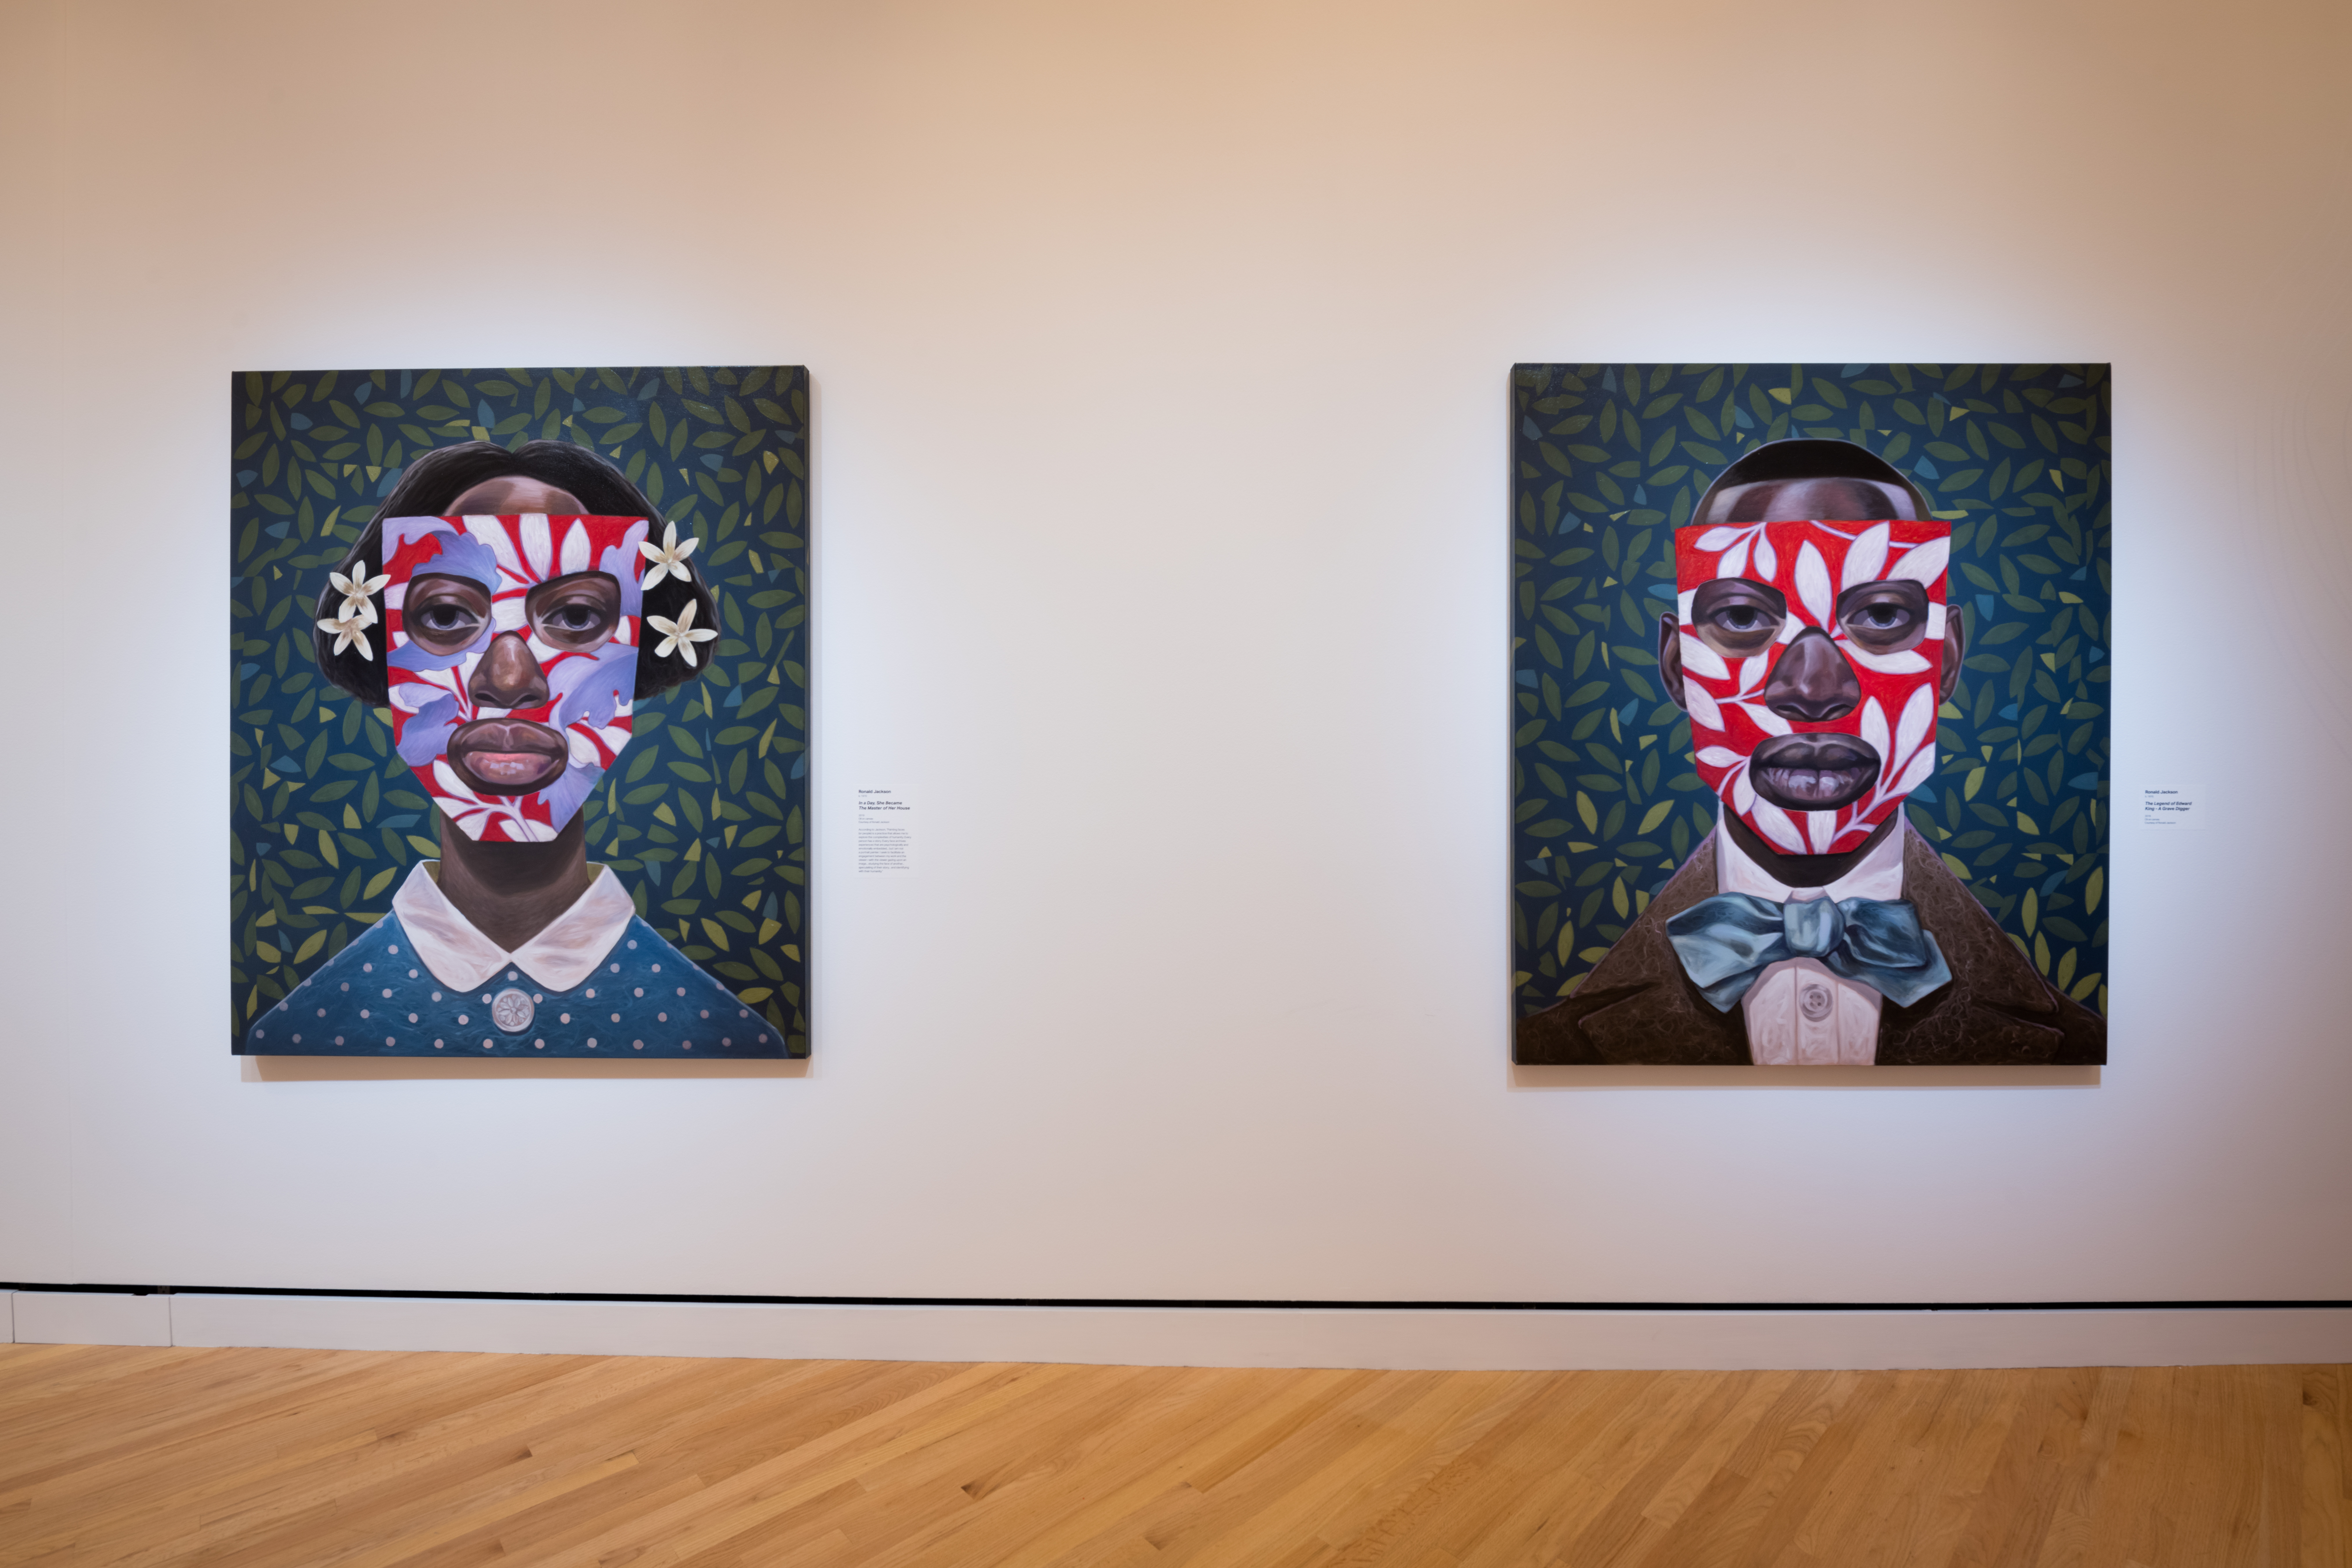 """(Left) Ronald Jackson, """"In a Day, She Became the Master of Her House,"""" 2019. Oil on canvas, 65 x 55 x 1 3⁄4 in. (Right), Ronald Jackson, """"The Legend of Edward King—A Grave Digger,"""" 2019. Oil on canvas, 65 x 55 x 1 3⁄4 in. Both works courtesy of Ronald Jackson. On view at Crystal Bridges Museum of American Art."""